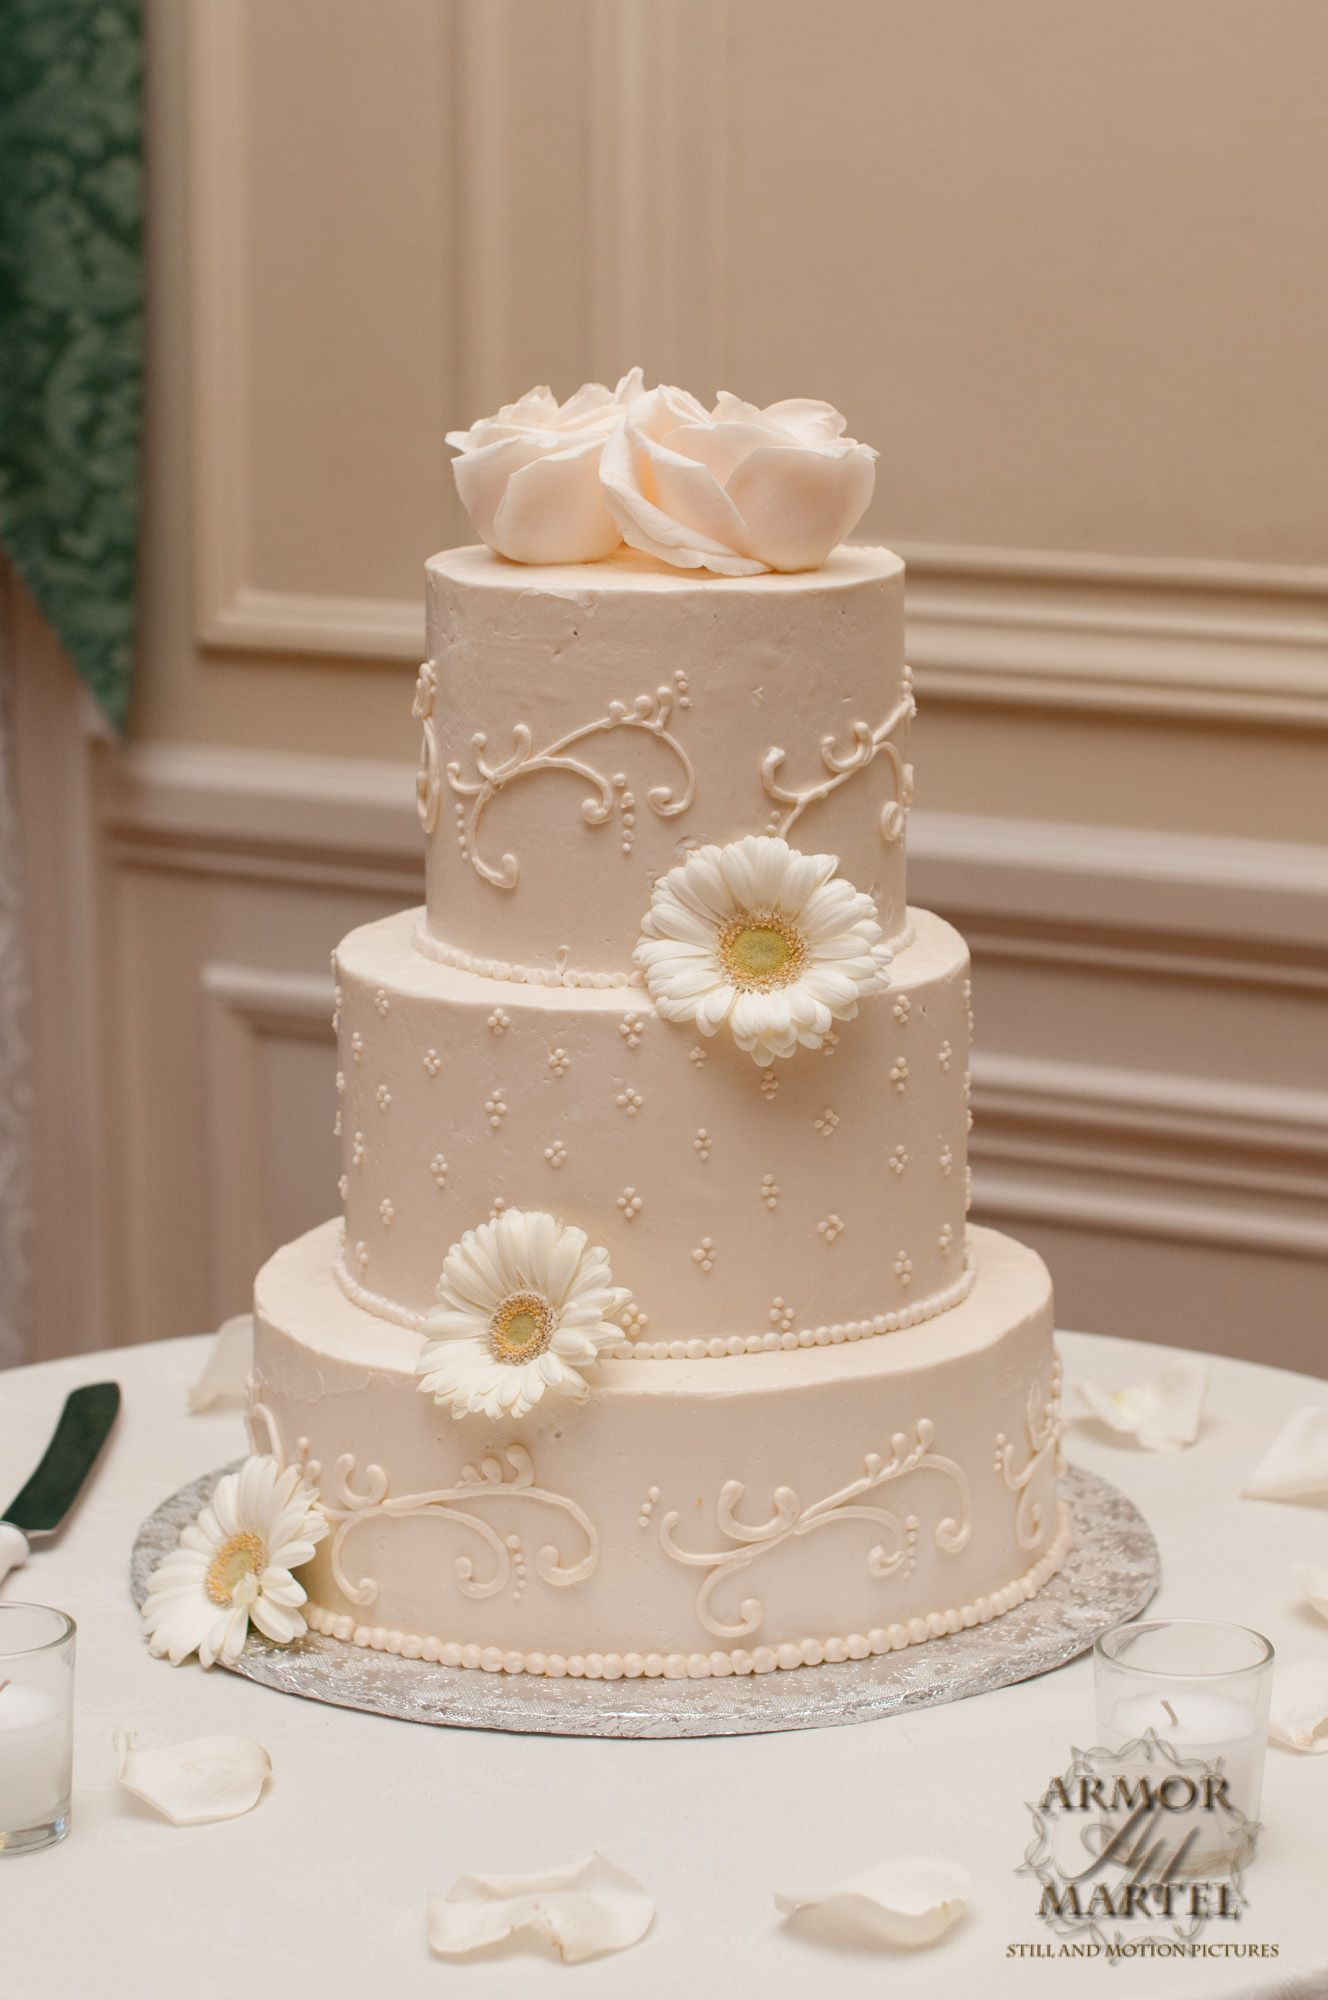 White on white buttercream, scroll work, piping, simple